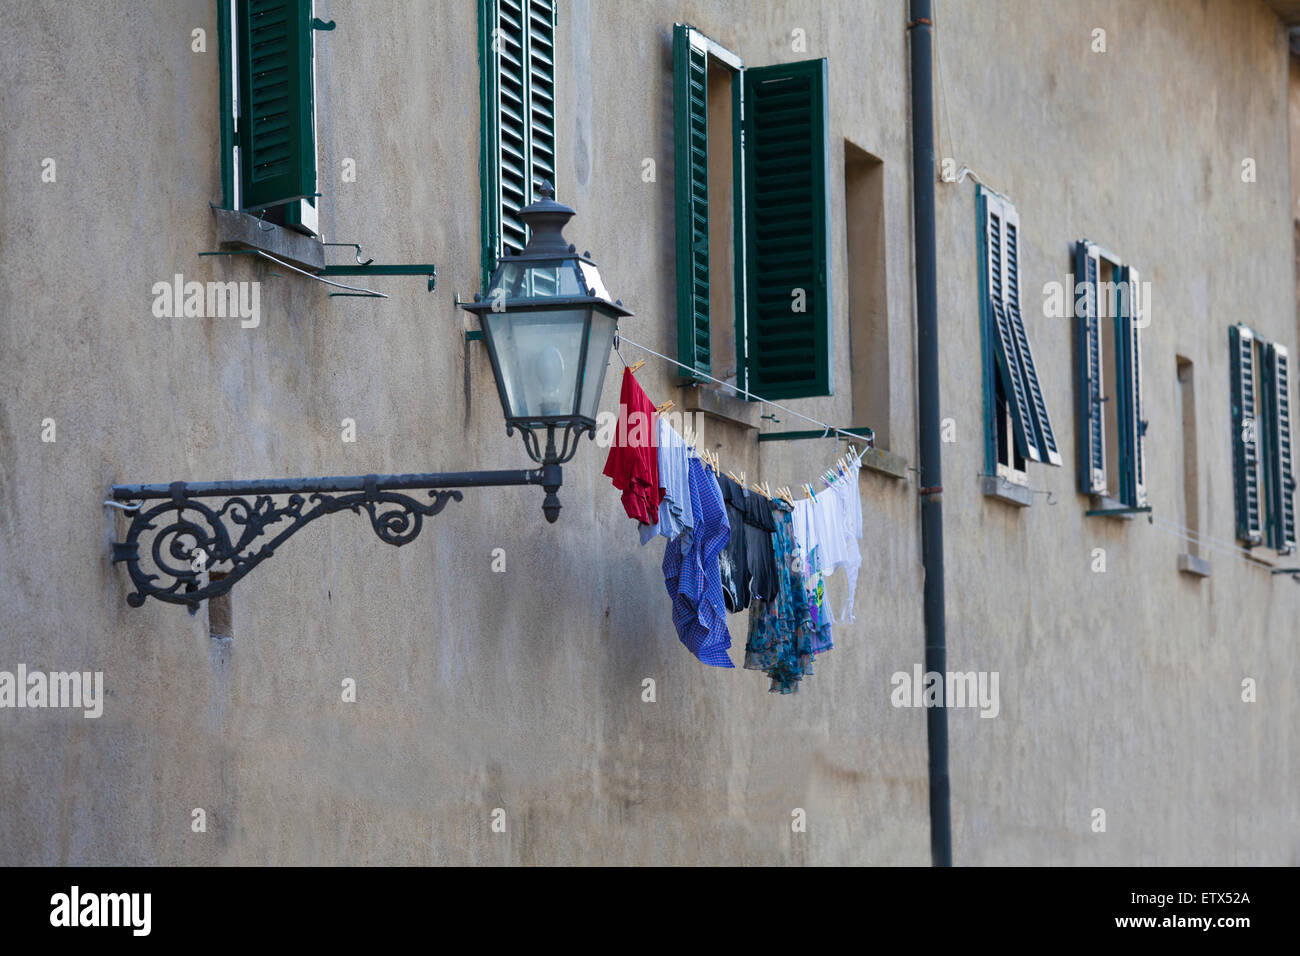 Laundry hanging outside window with an old street light beside it in the city of Volterra i Tuscany in Italy - Stock Image